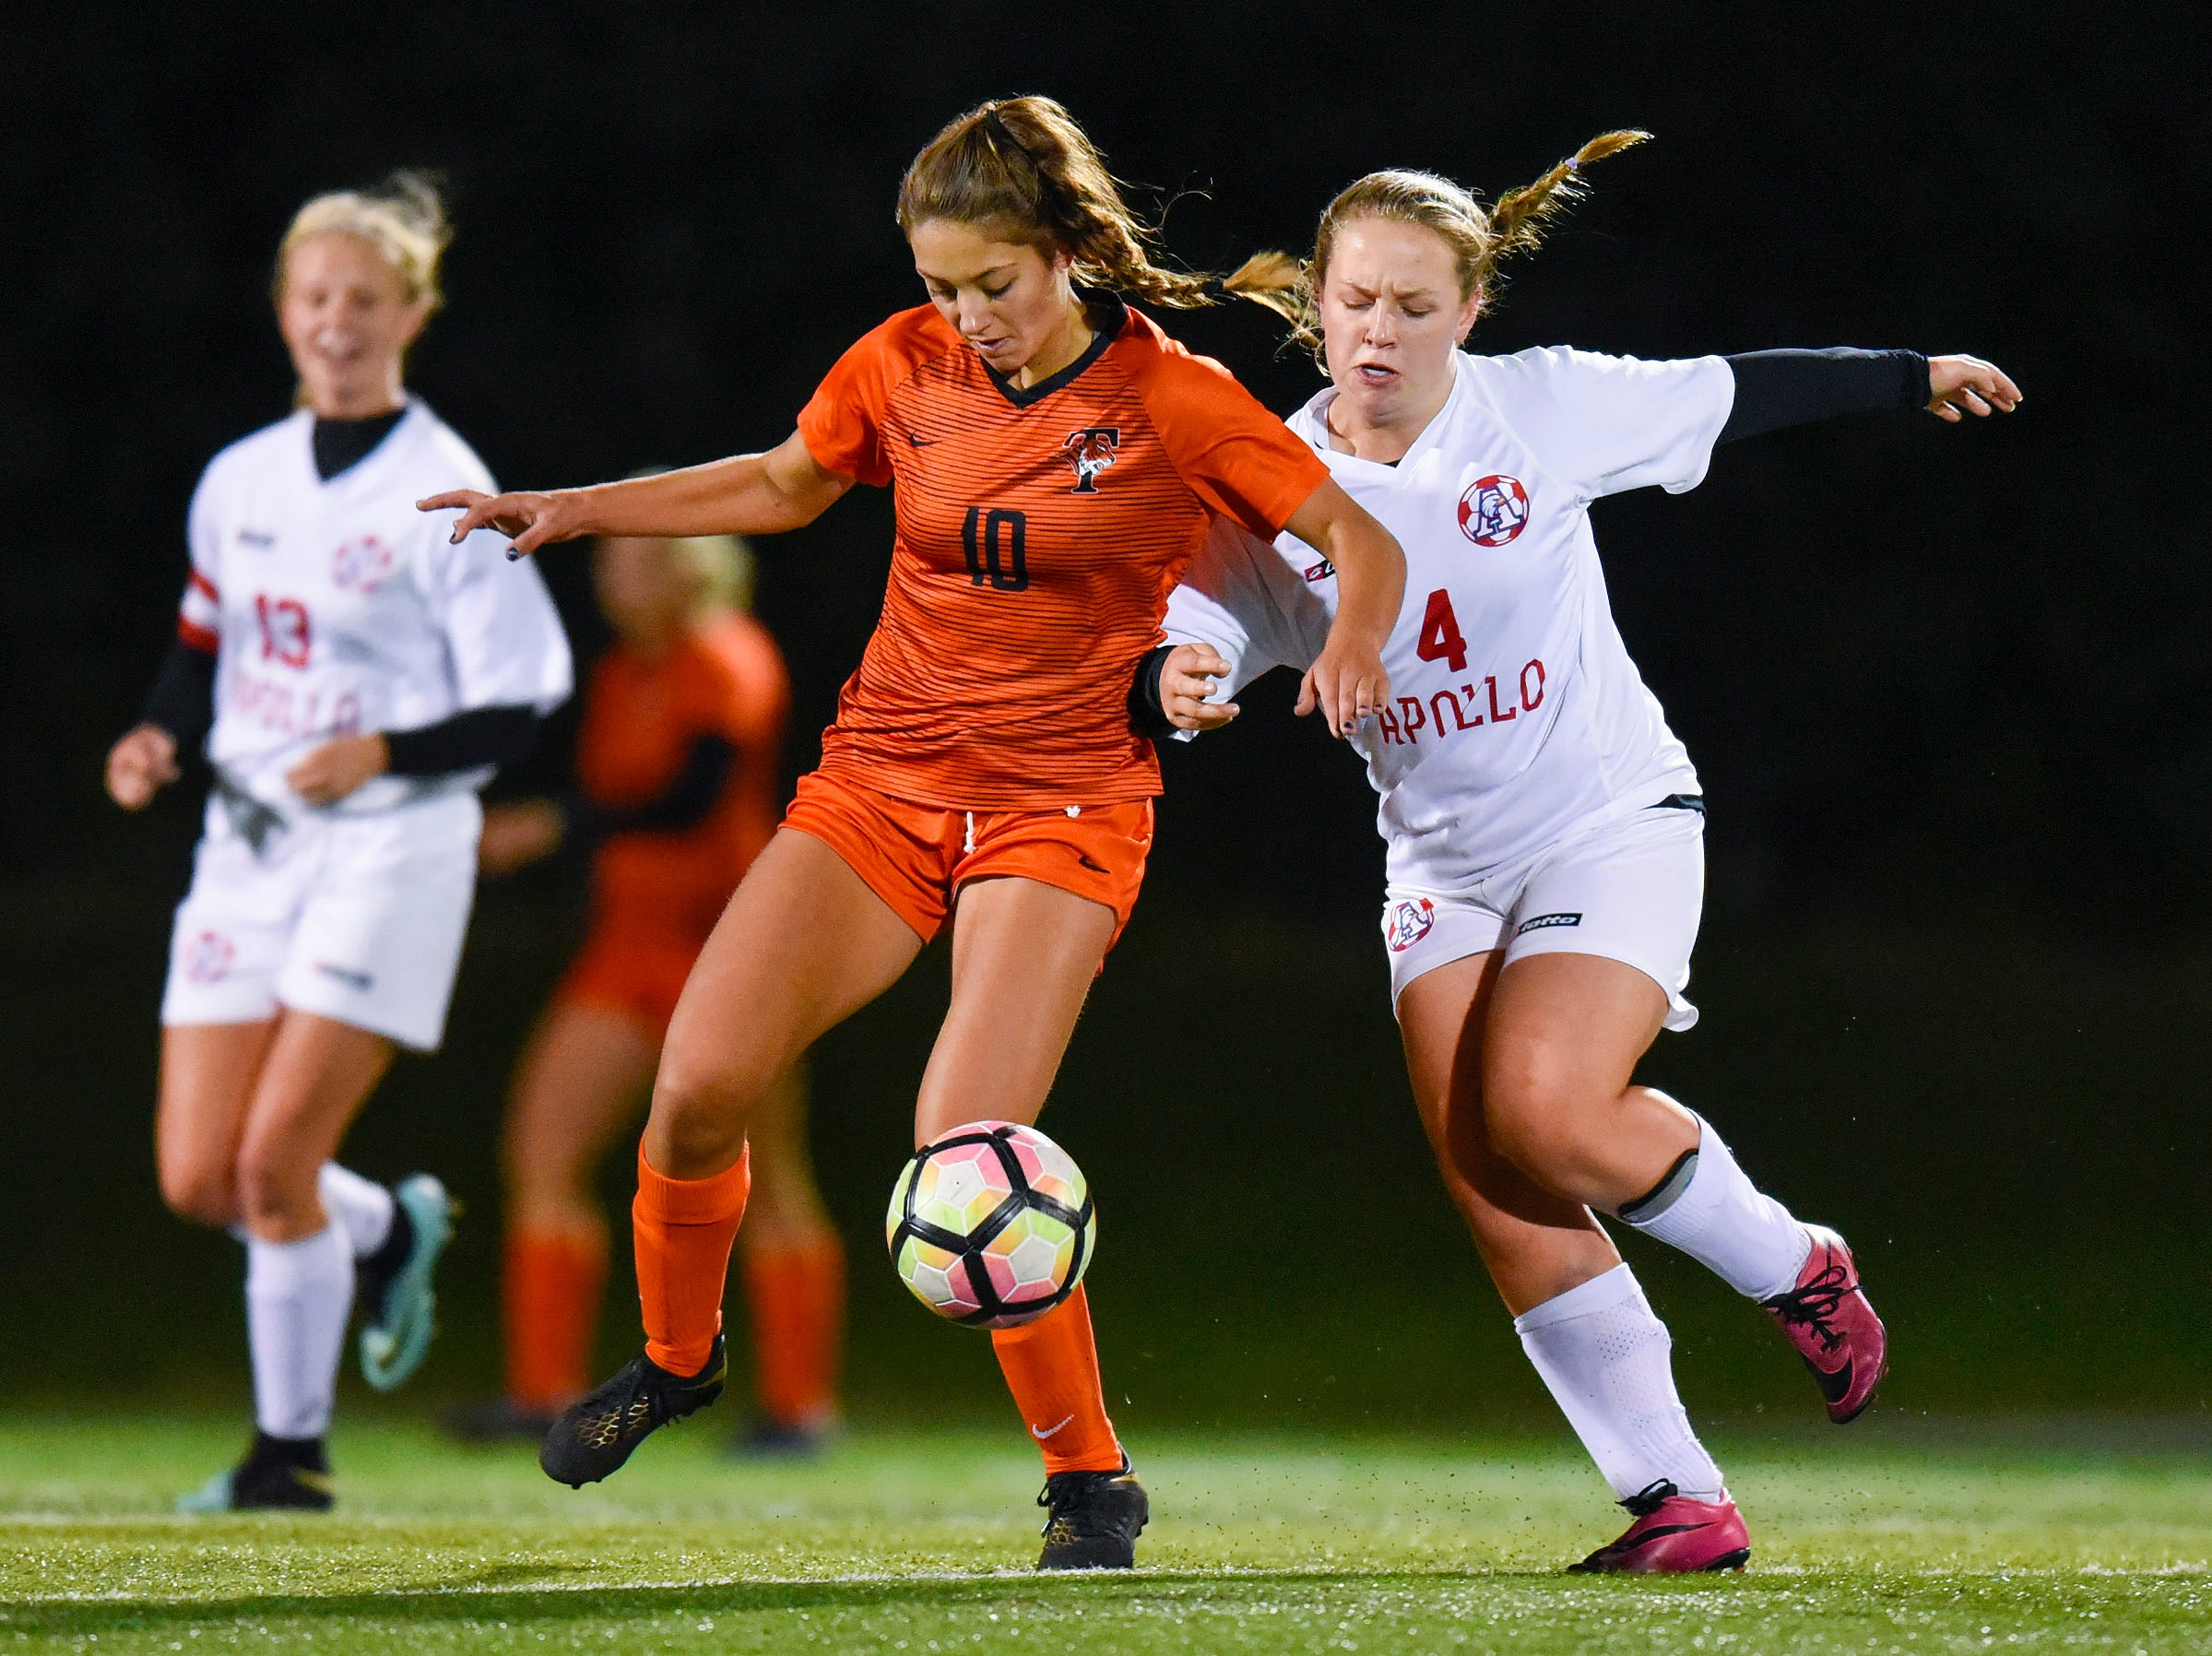 Tech's Taylor Holm and Apollo's Josie Hamre battle for the ball during the first half Thursday, Sept. 27, at Husky Stadium.